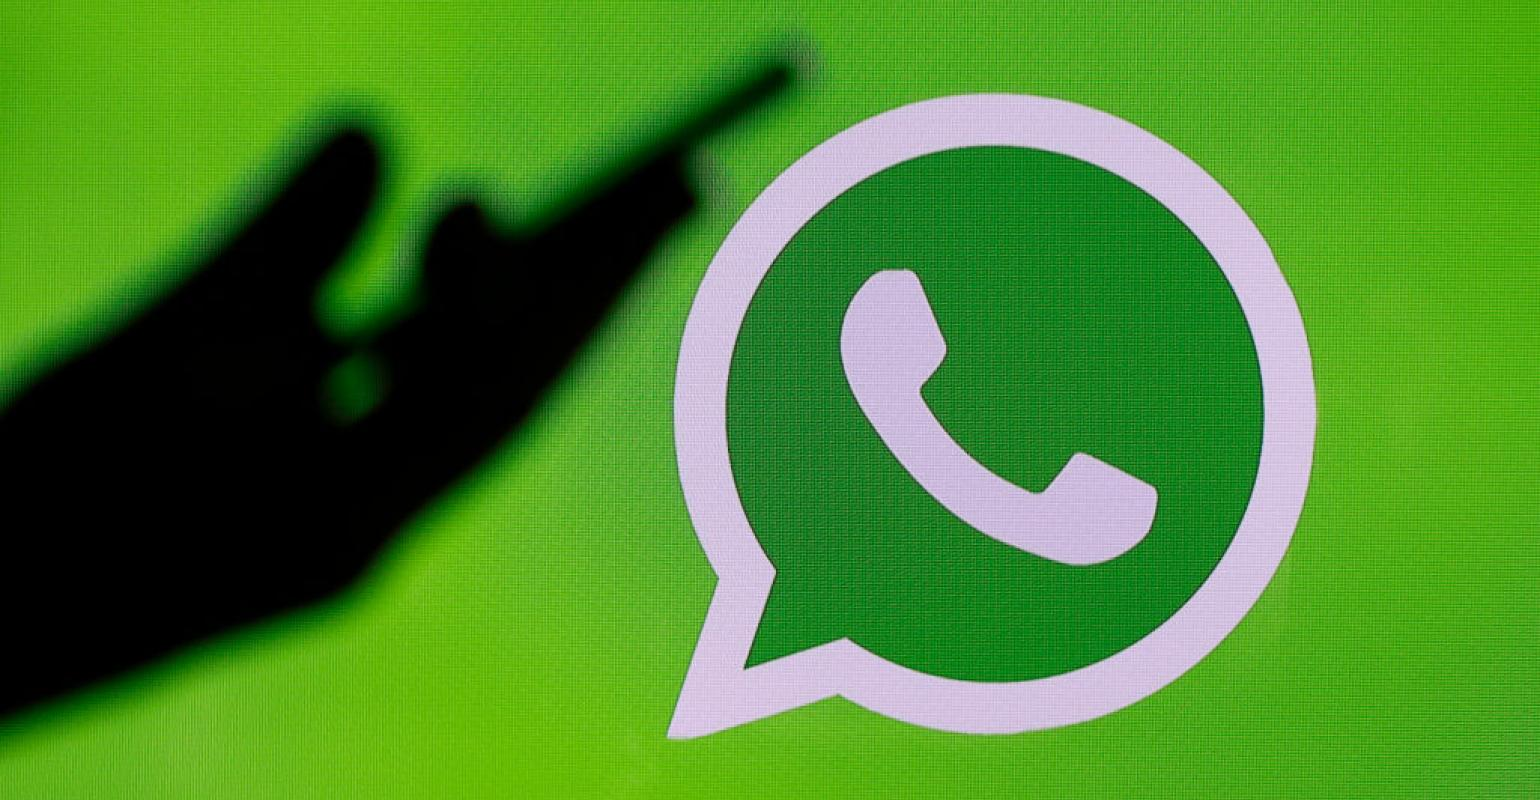 How to hide WhatsApp photos from gallery on Android?